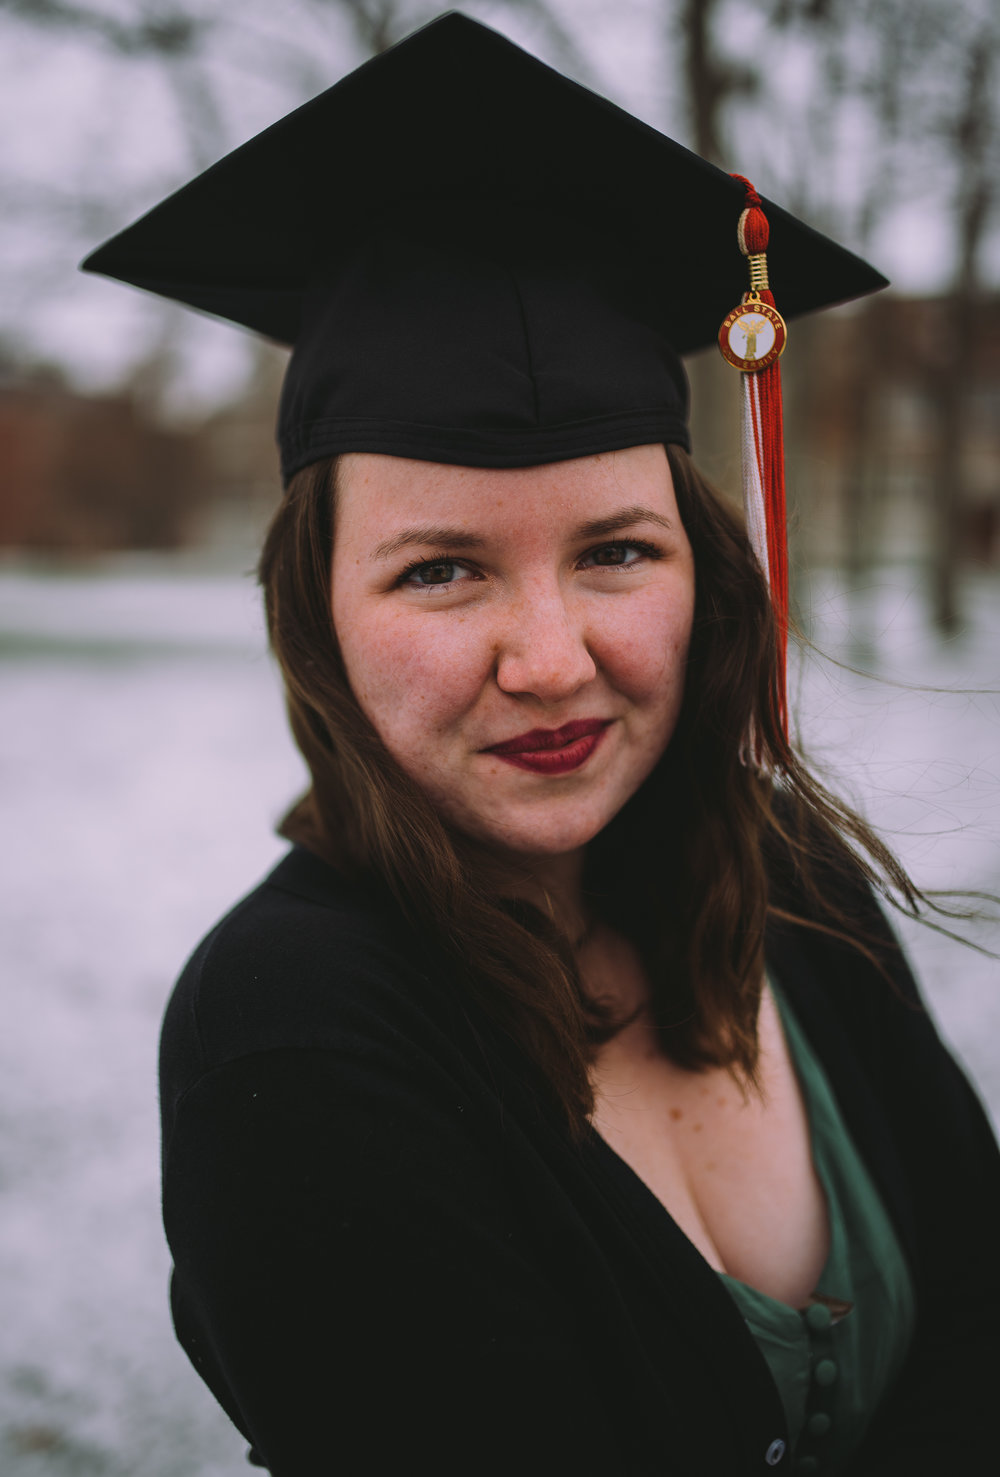 SamanthaBrammer_CollegeGraduationPortraits_BallStateUniversity_December2017_Portrait Photography In Tempe_ArizonaPortraitPhotographer_SamanthaRosePhotography_-7.jpg